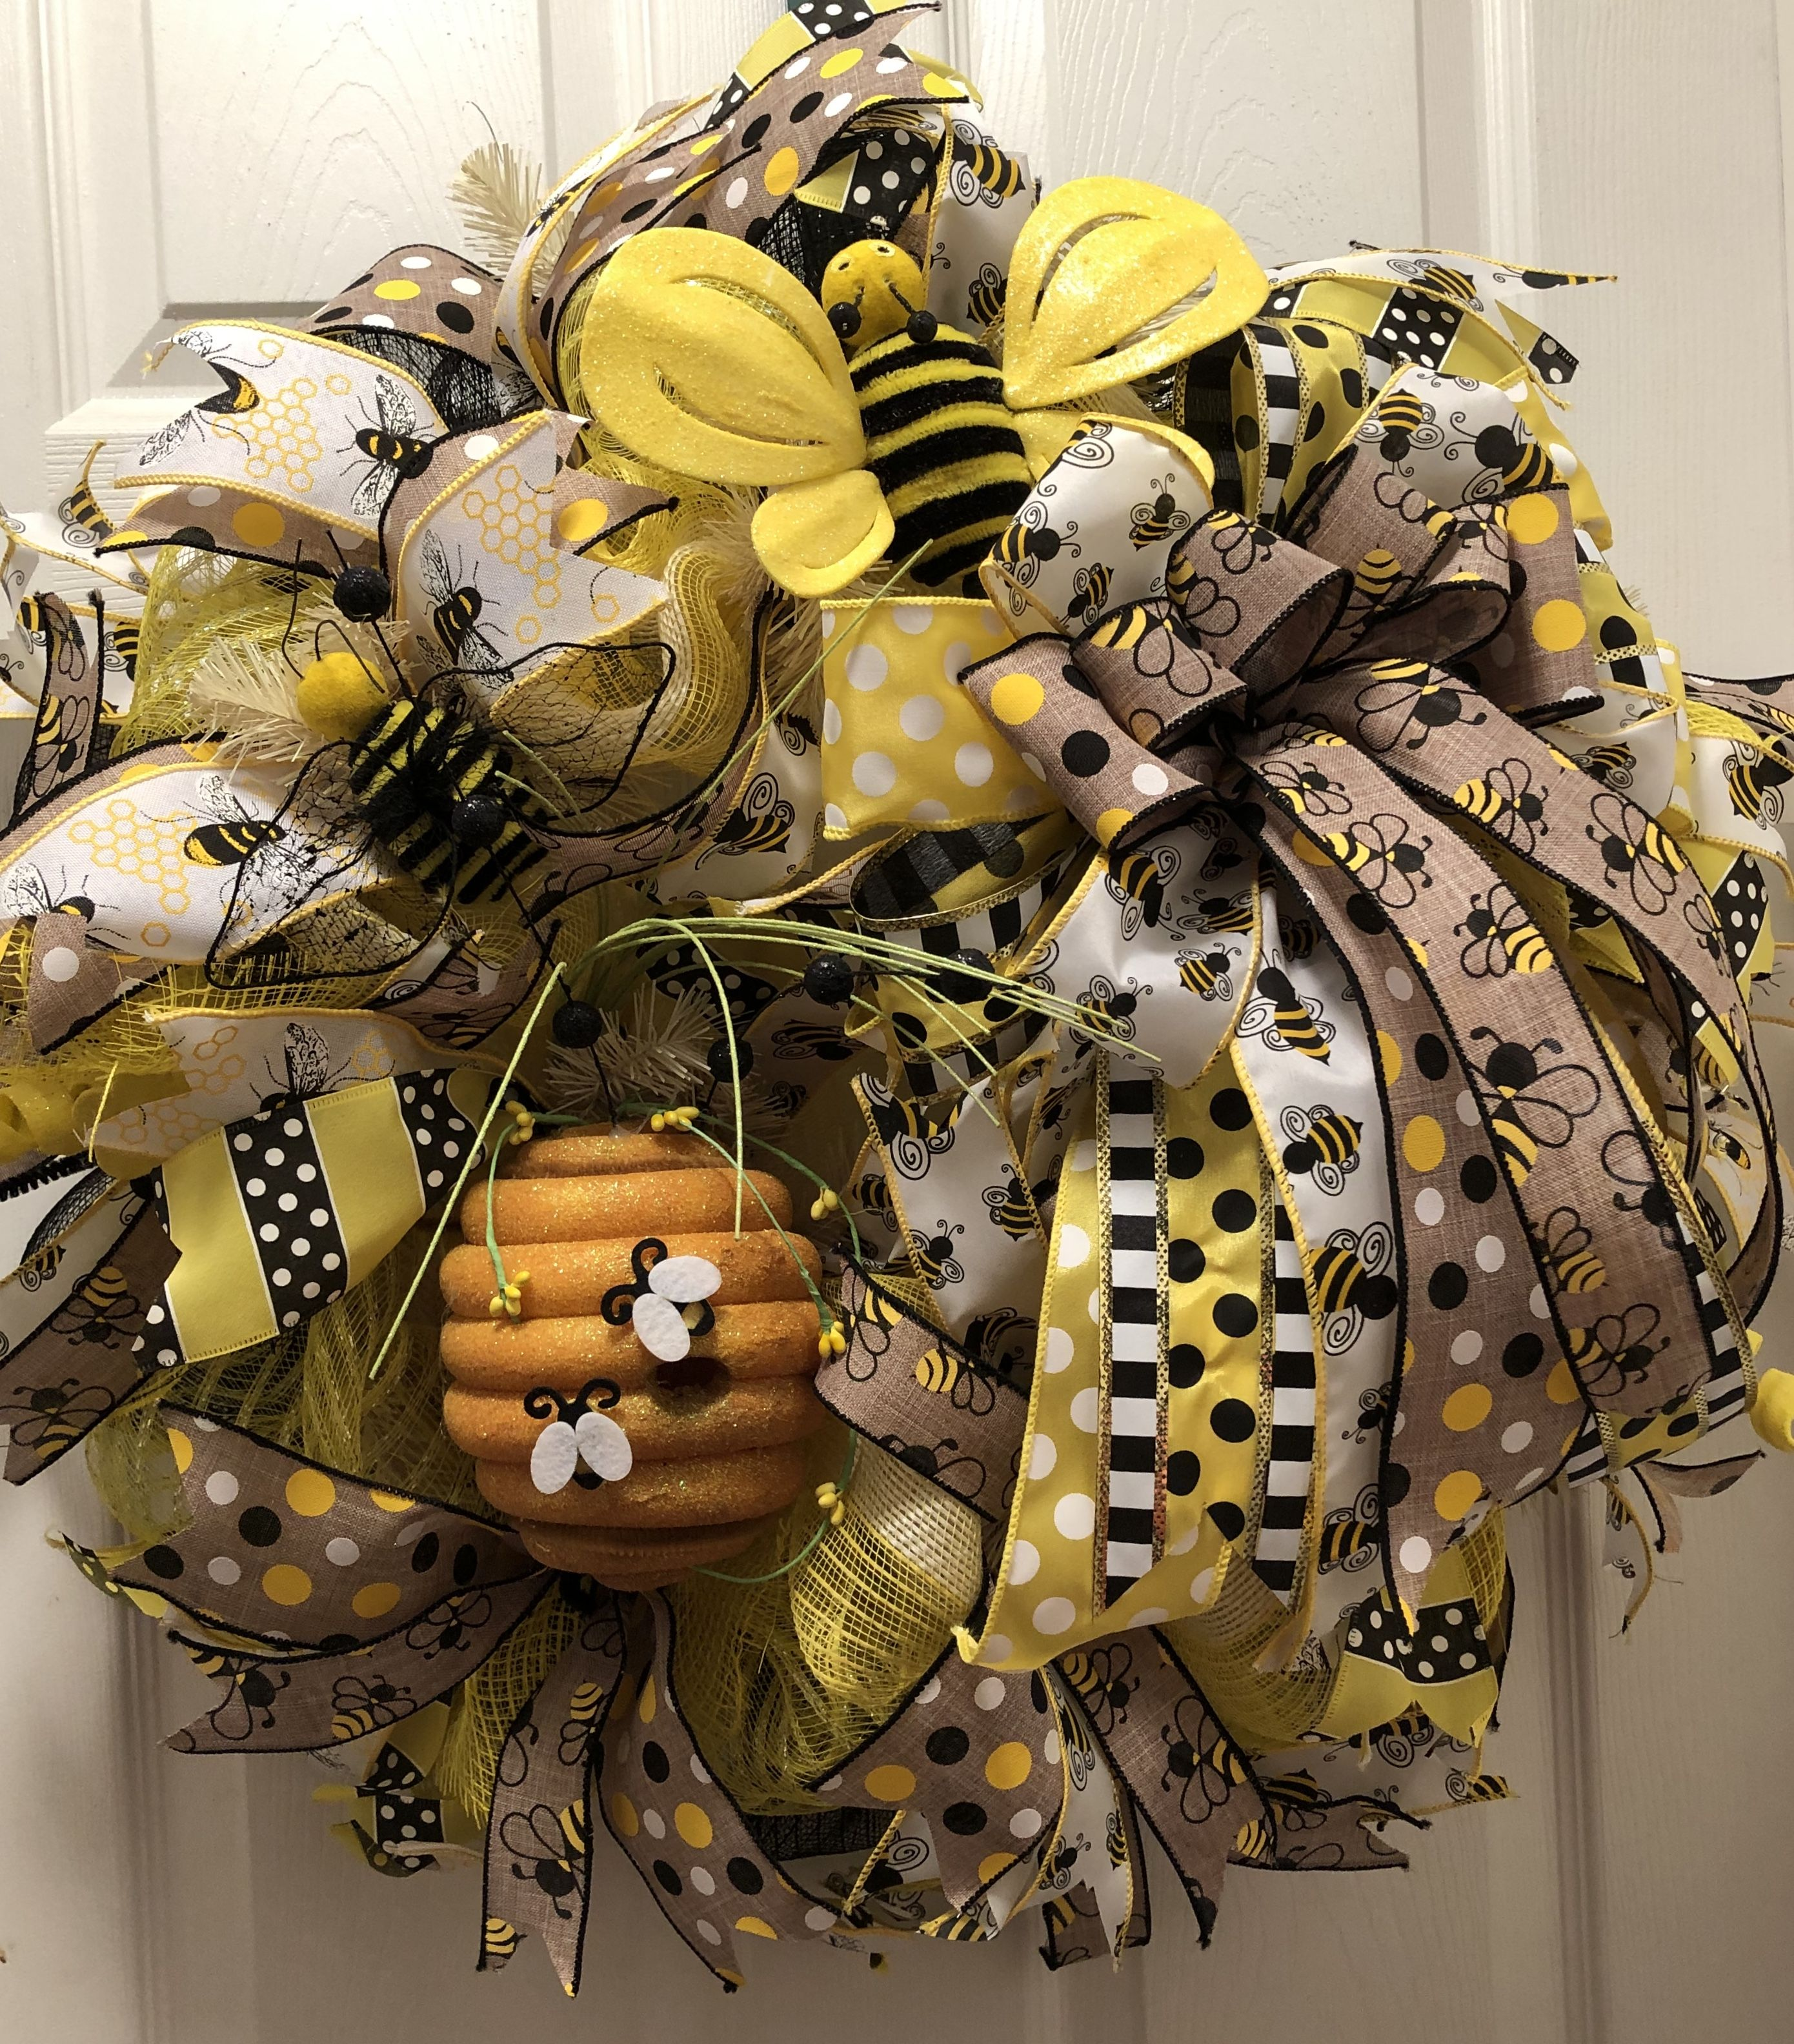 Bee hive on wire wreath form Bees deco mesh and ribbons in